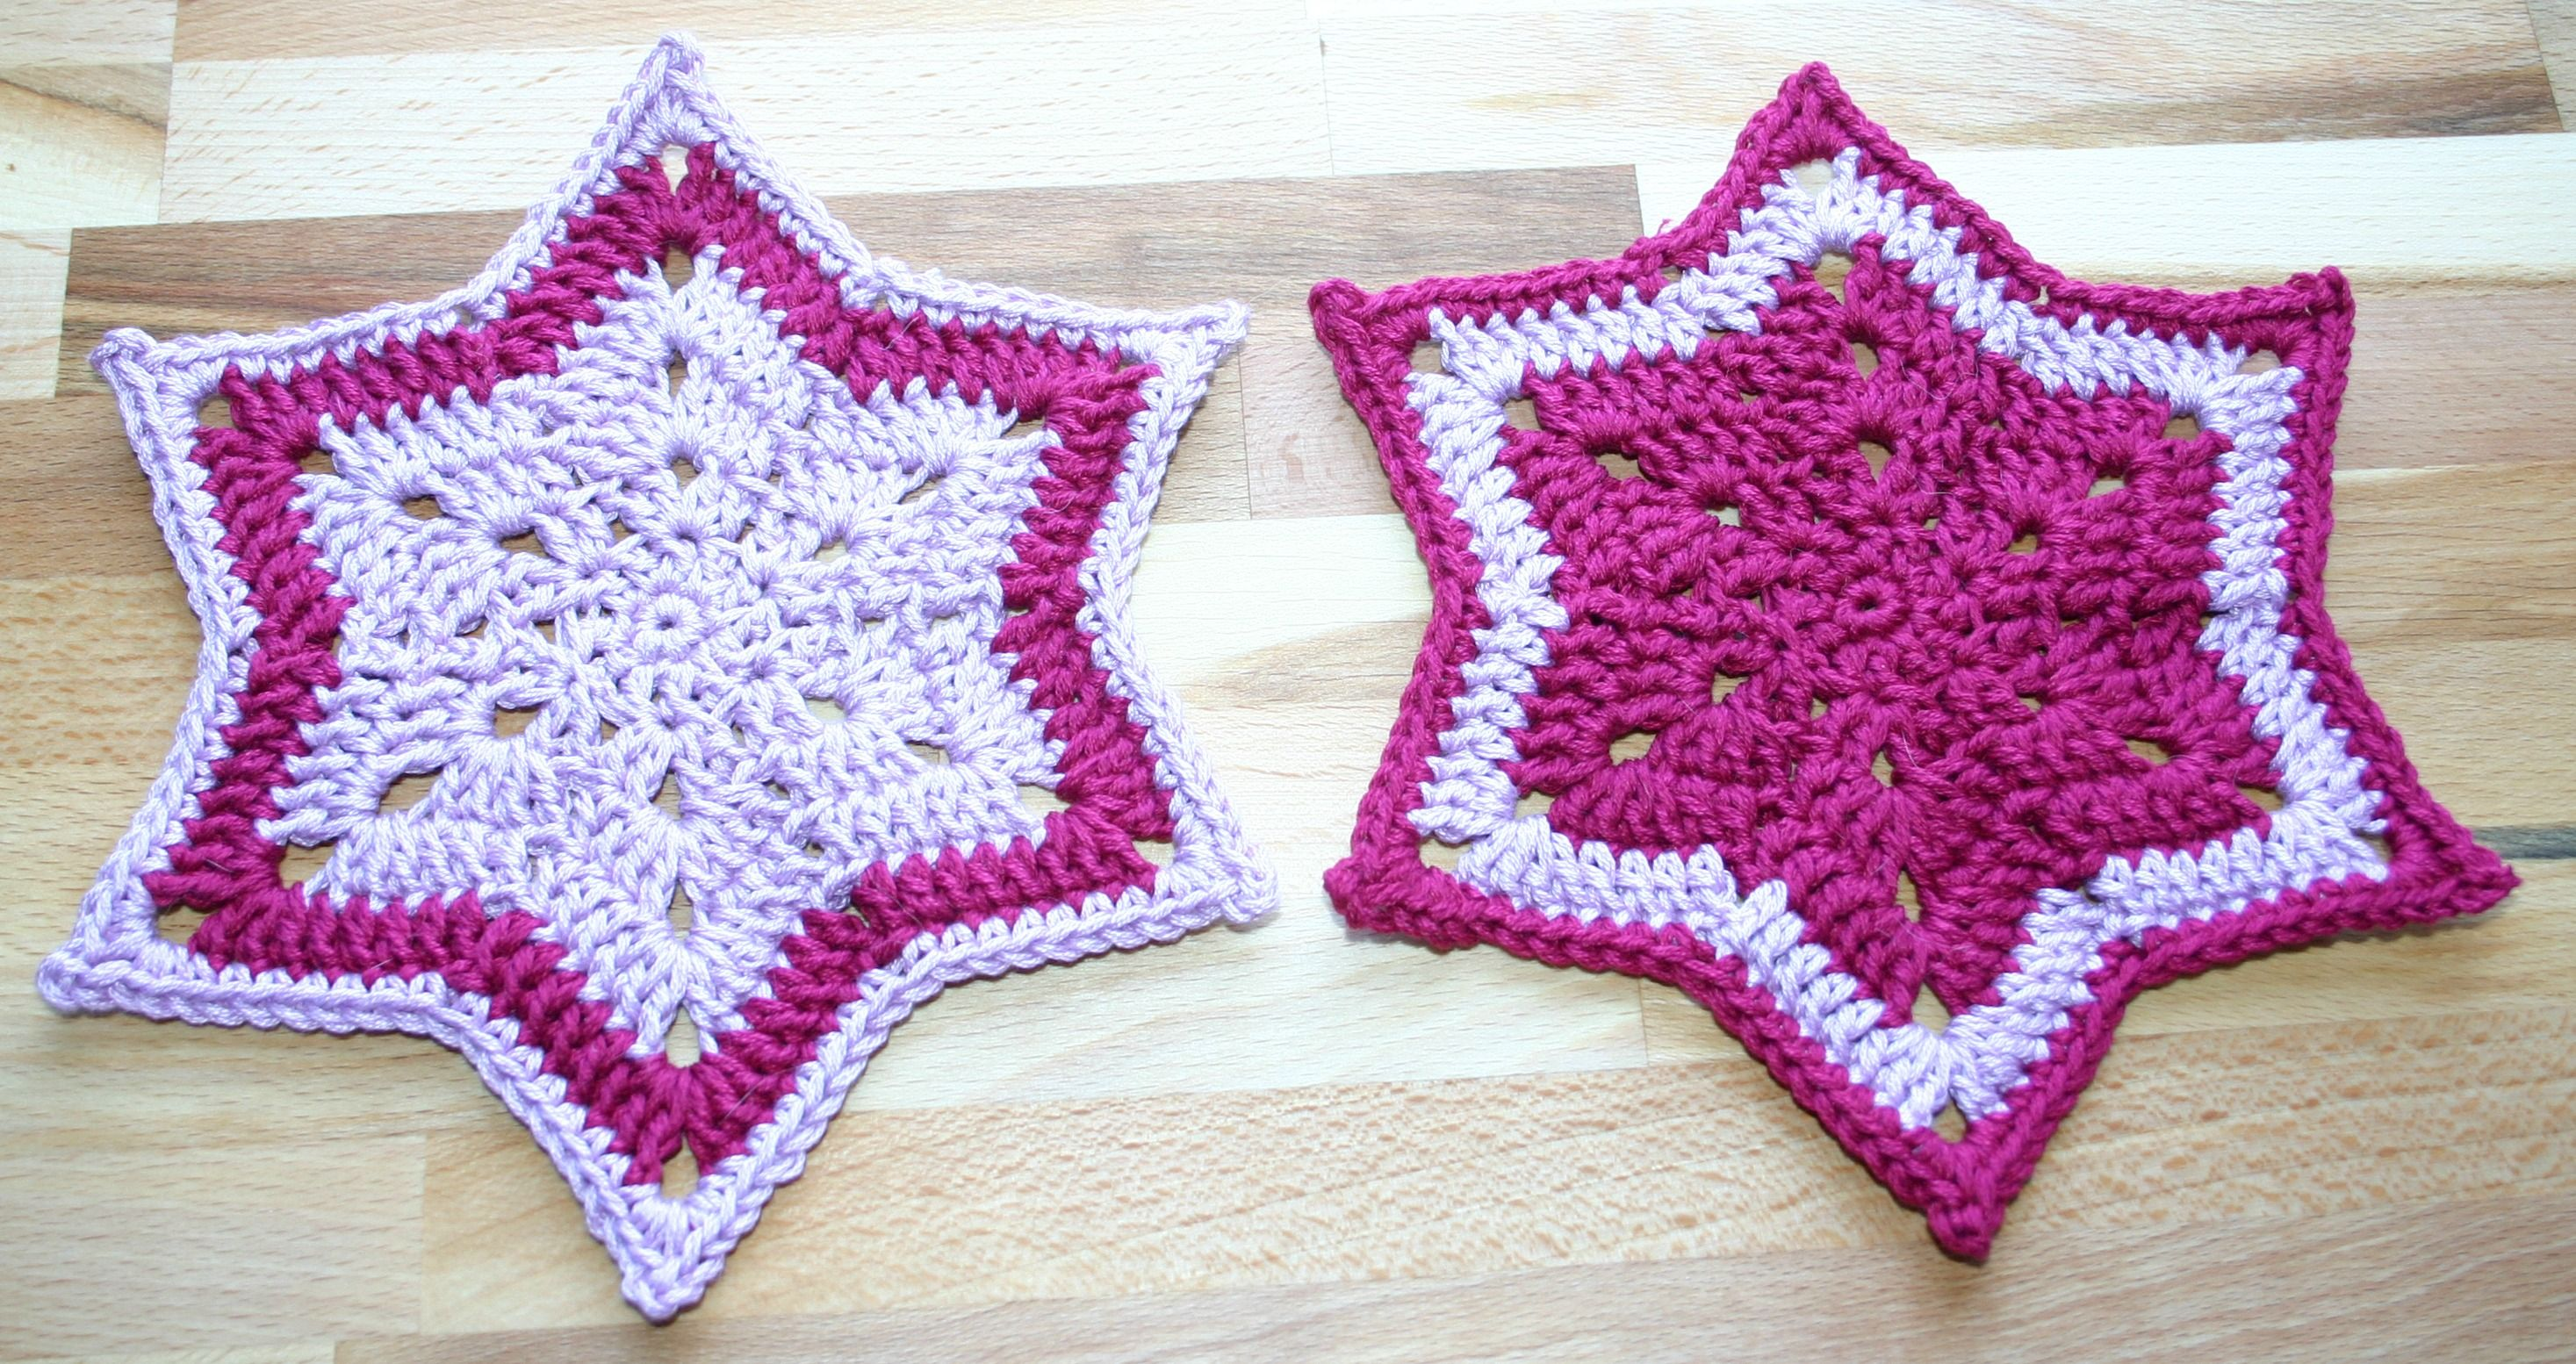 Kitchen Magic!  Potholders crochet a star shape ... for a magical teatime! :D